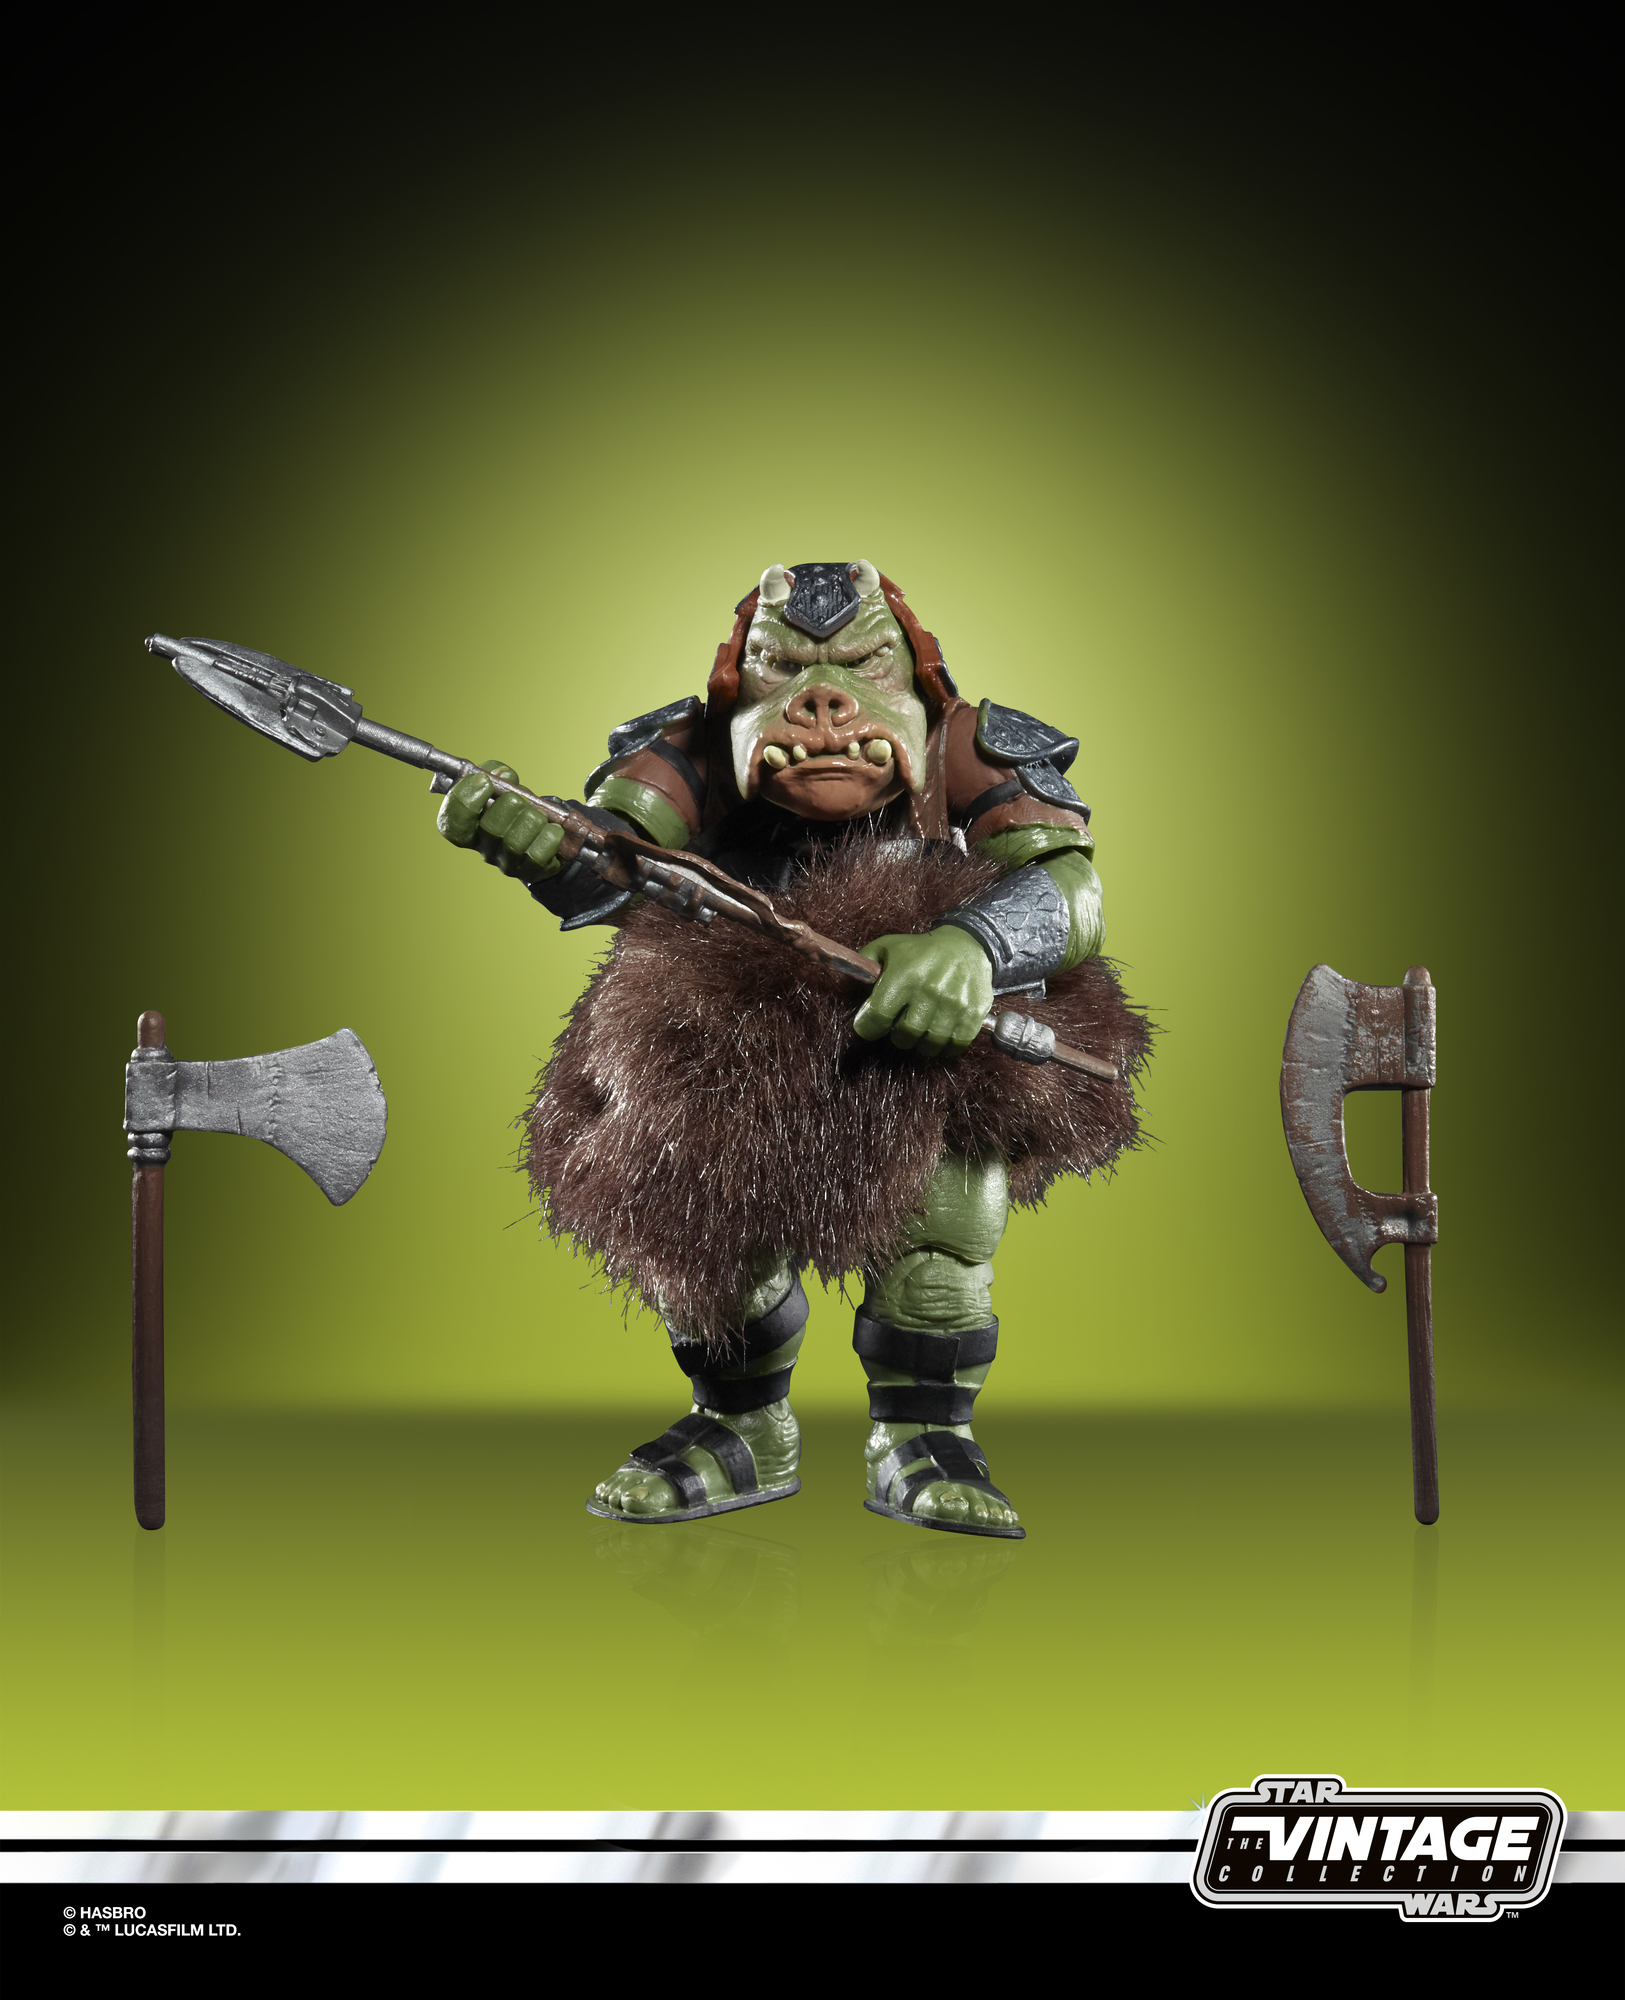 ROTJ Vintage Gamorrean Guard Figure